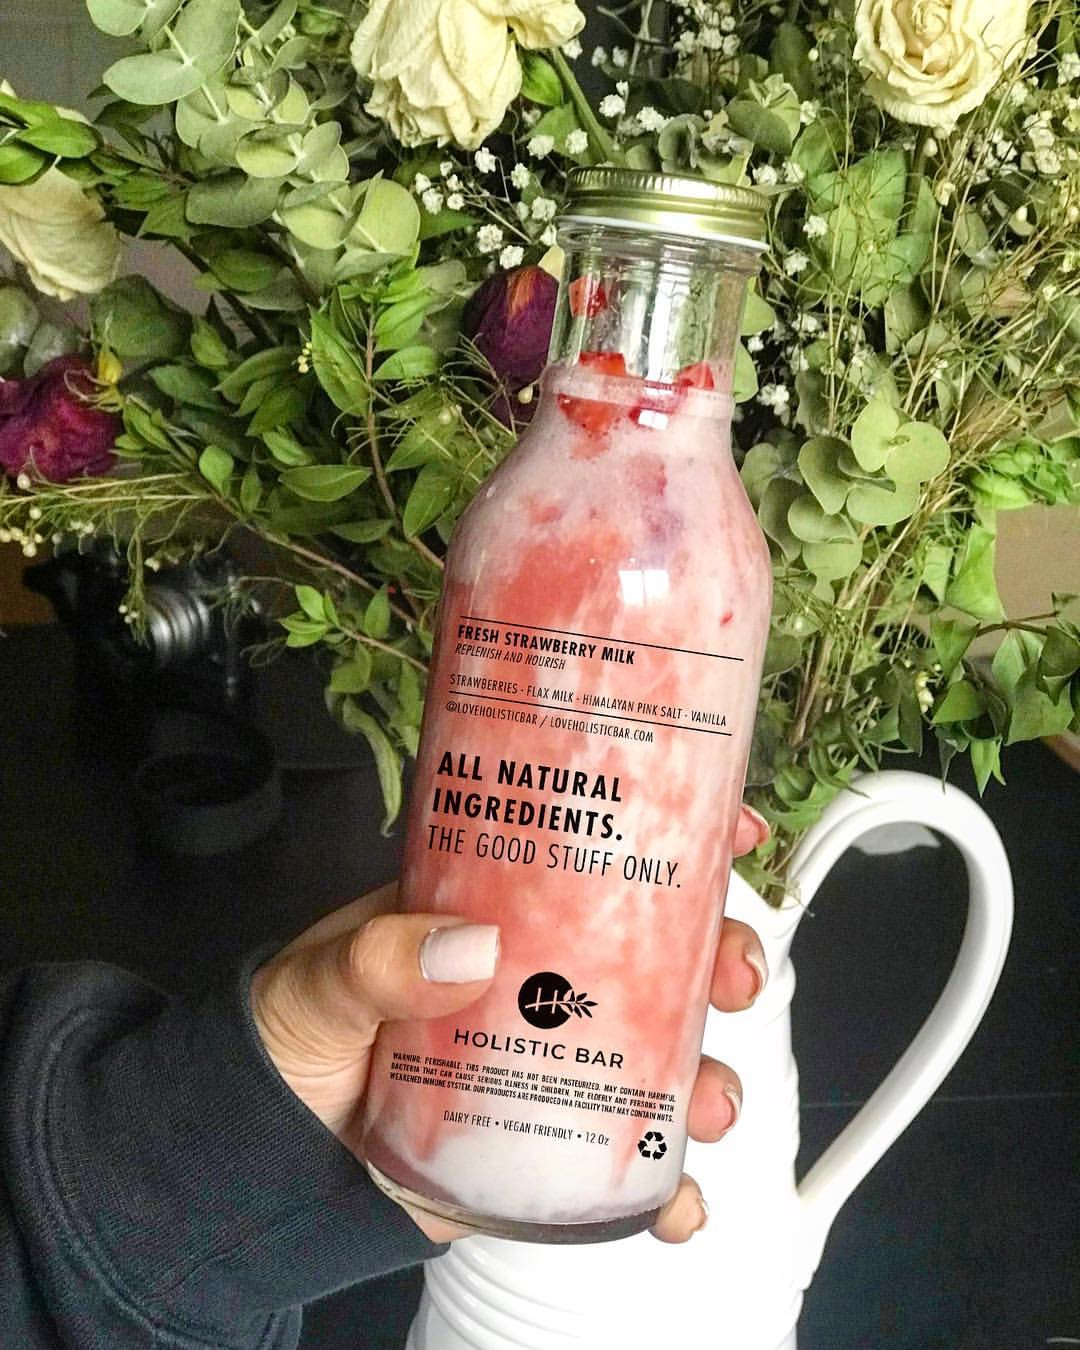 Holistic Bar - Fuel your body with the good stuff only. Drinks from Holistic Bar feature high quality, all natural ingredients such as their Activated Charcoal Coconut Water and Carbon Lemonade. Bonus: their Fresh Strawberry Milk is dairy free and vegan friendly!